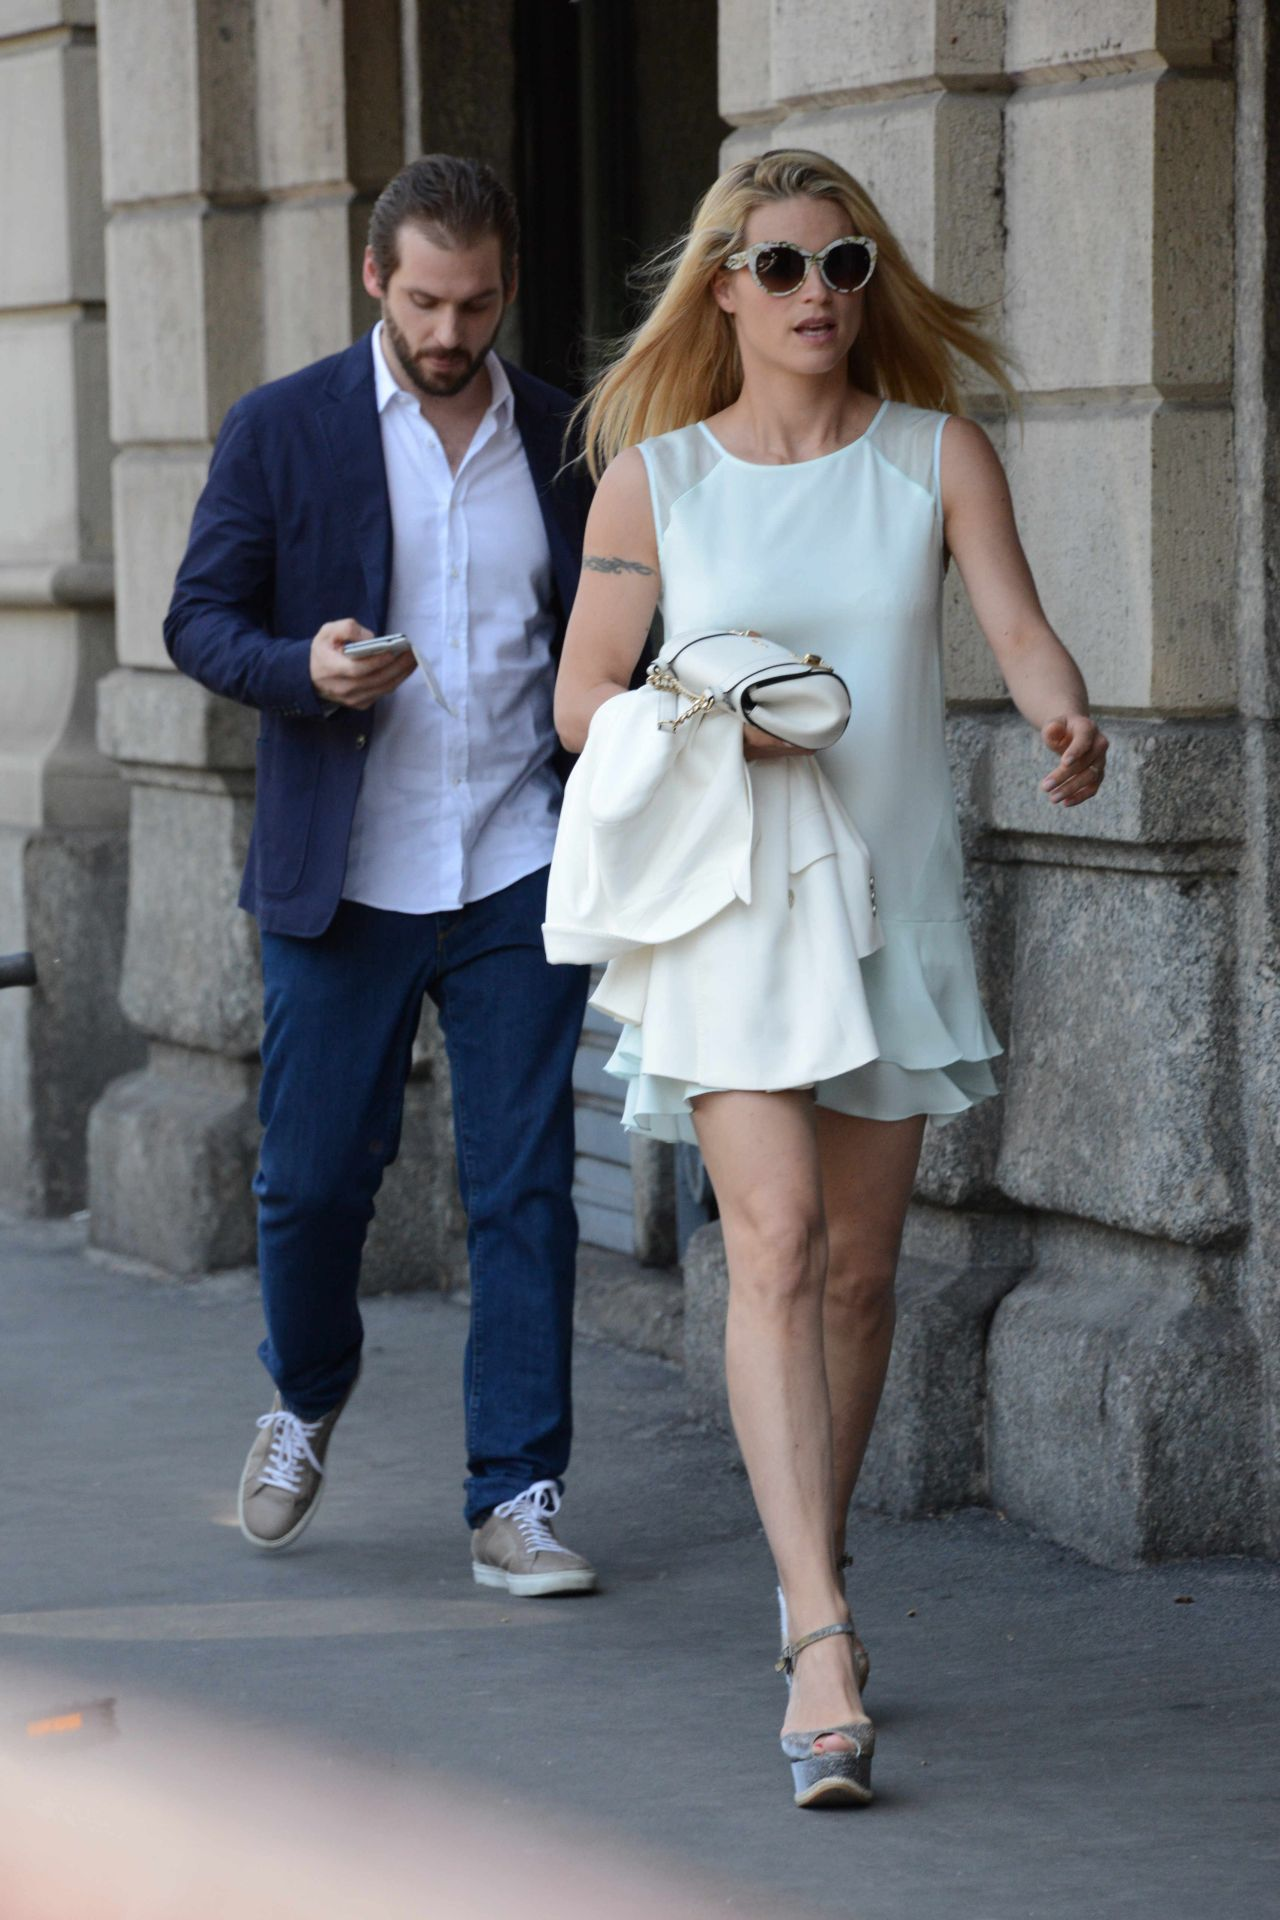 Michelle Hunziker Amp Tomaso Trussardi Out On Mother S Day